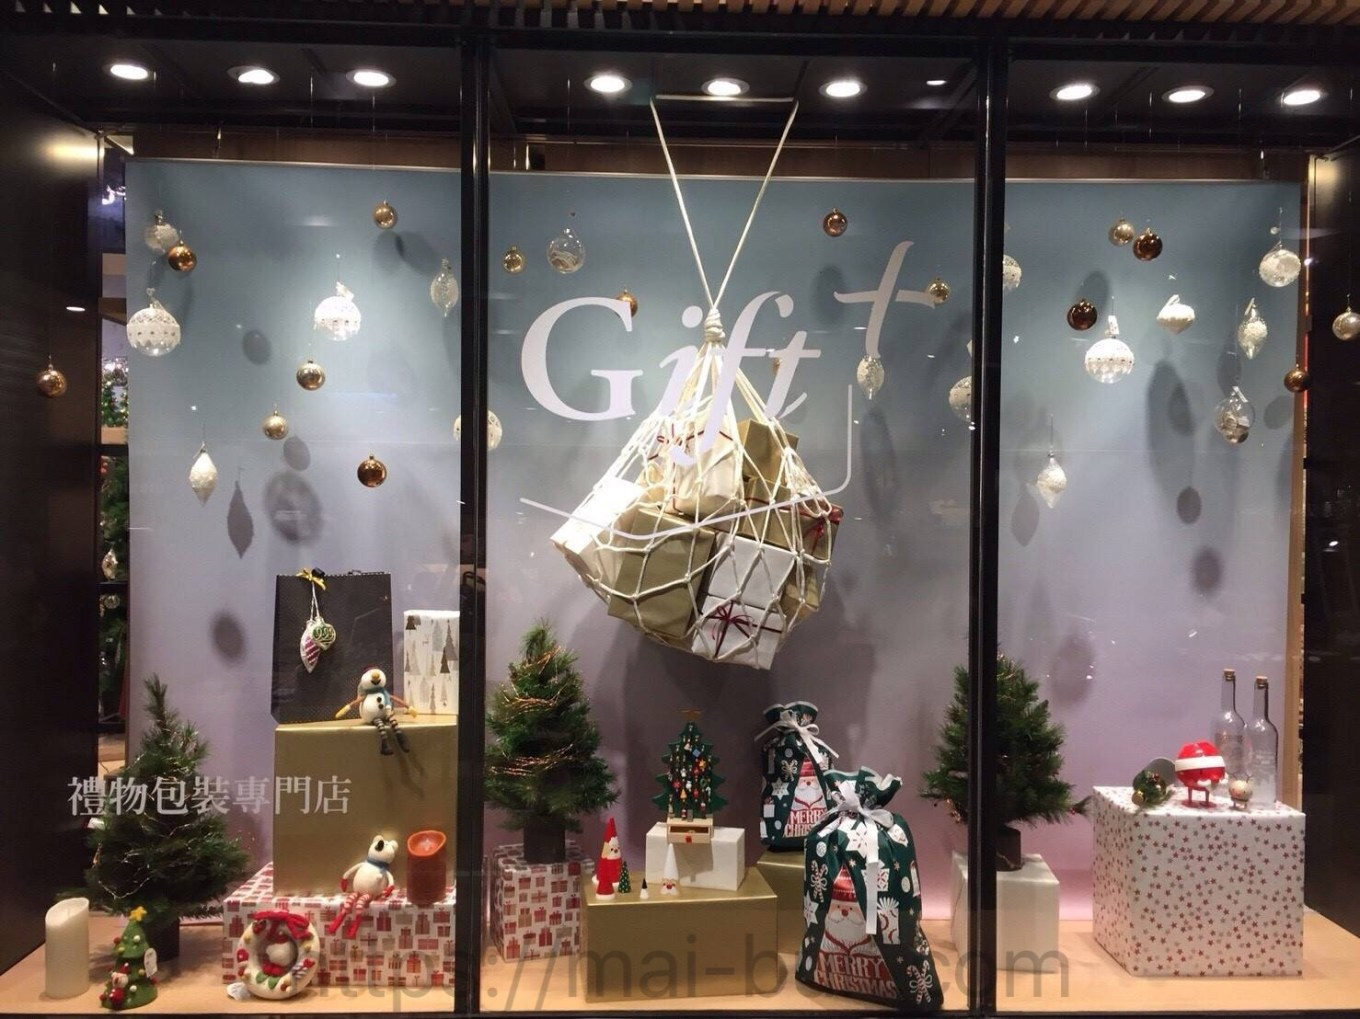 Image 10 eslite inside gift display.jpg